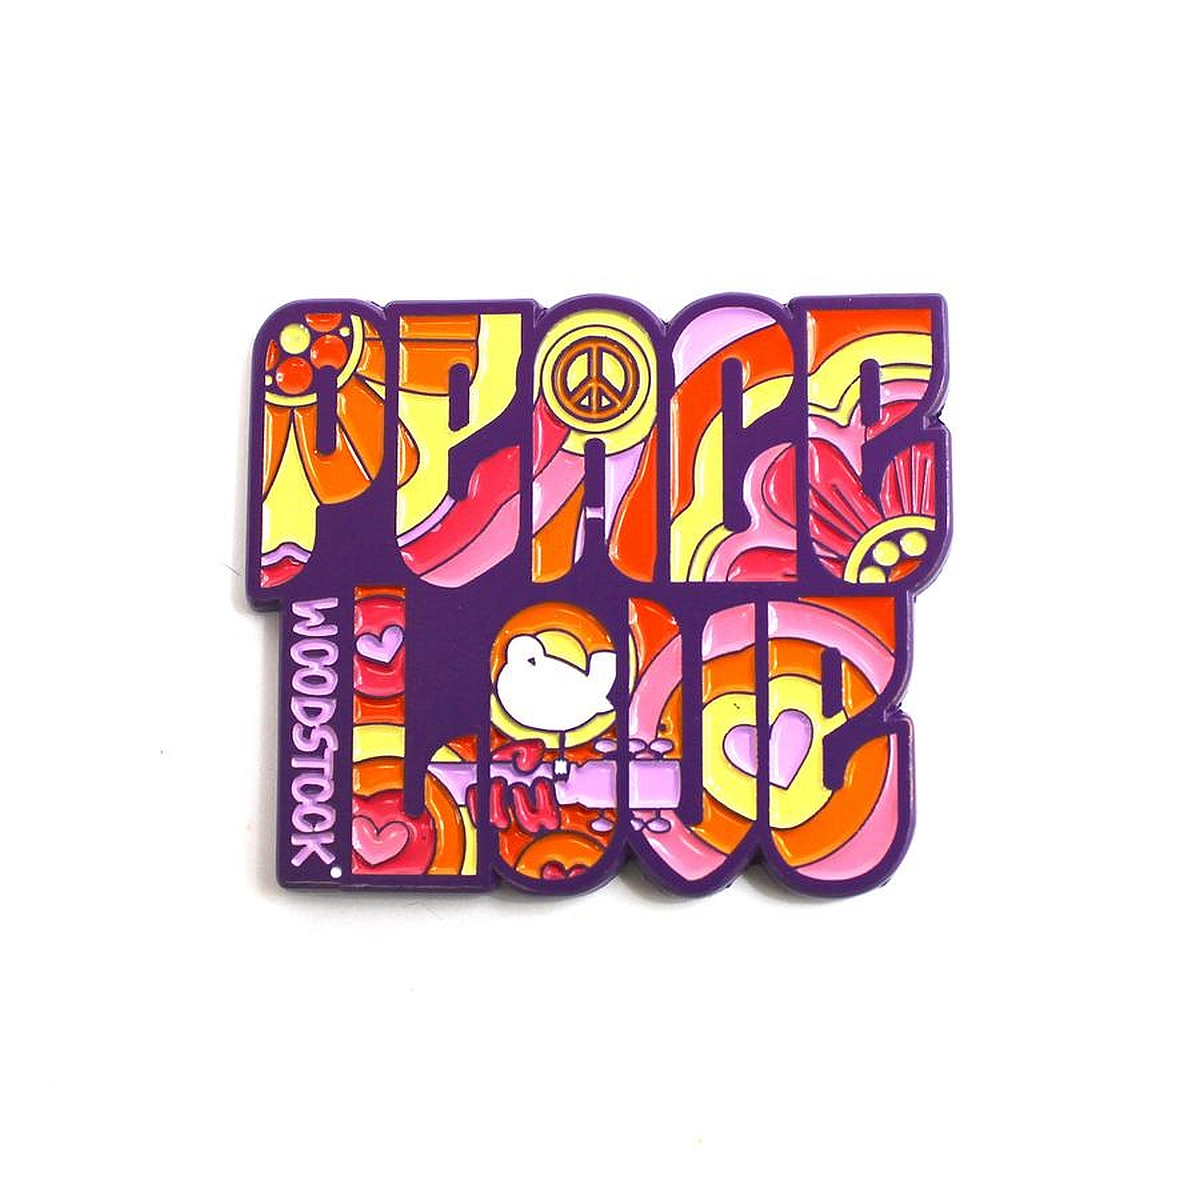 The Woodstock x Sloth Steady Peace & Love Pin